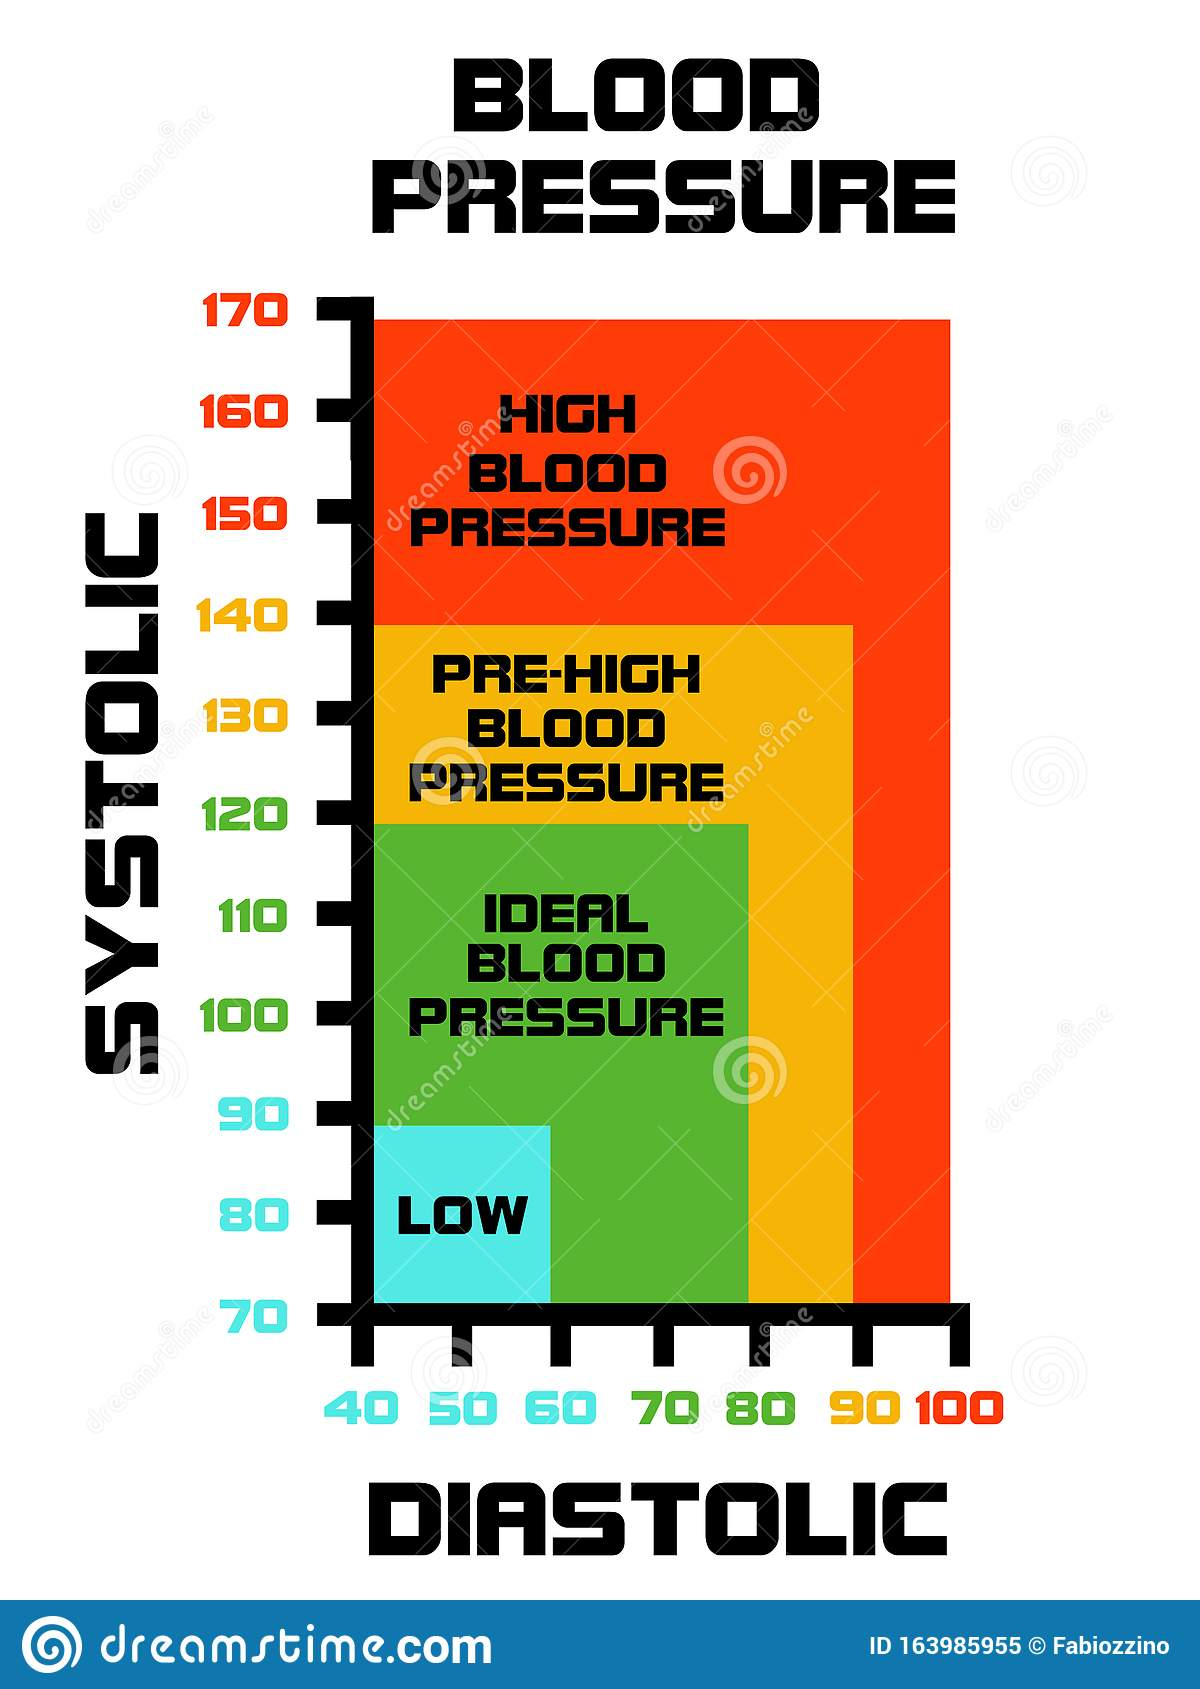 Blood Pressure Value Explained with Diagram Stock Illustration ...